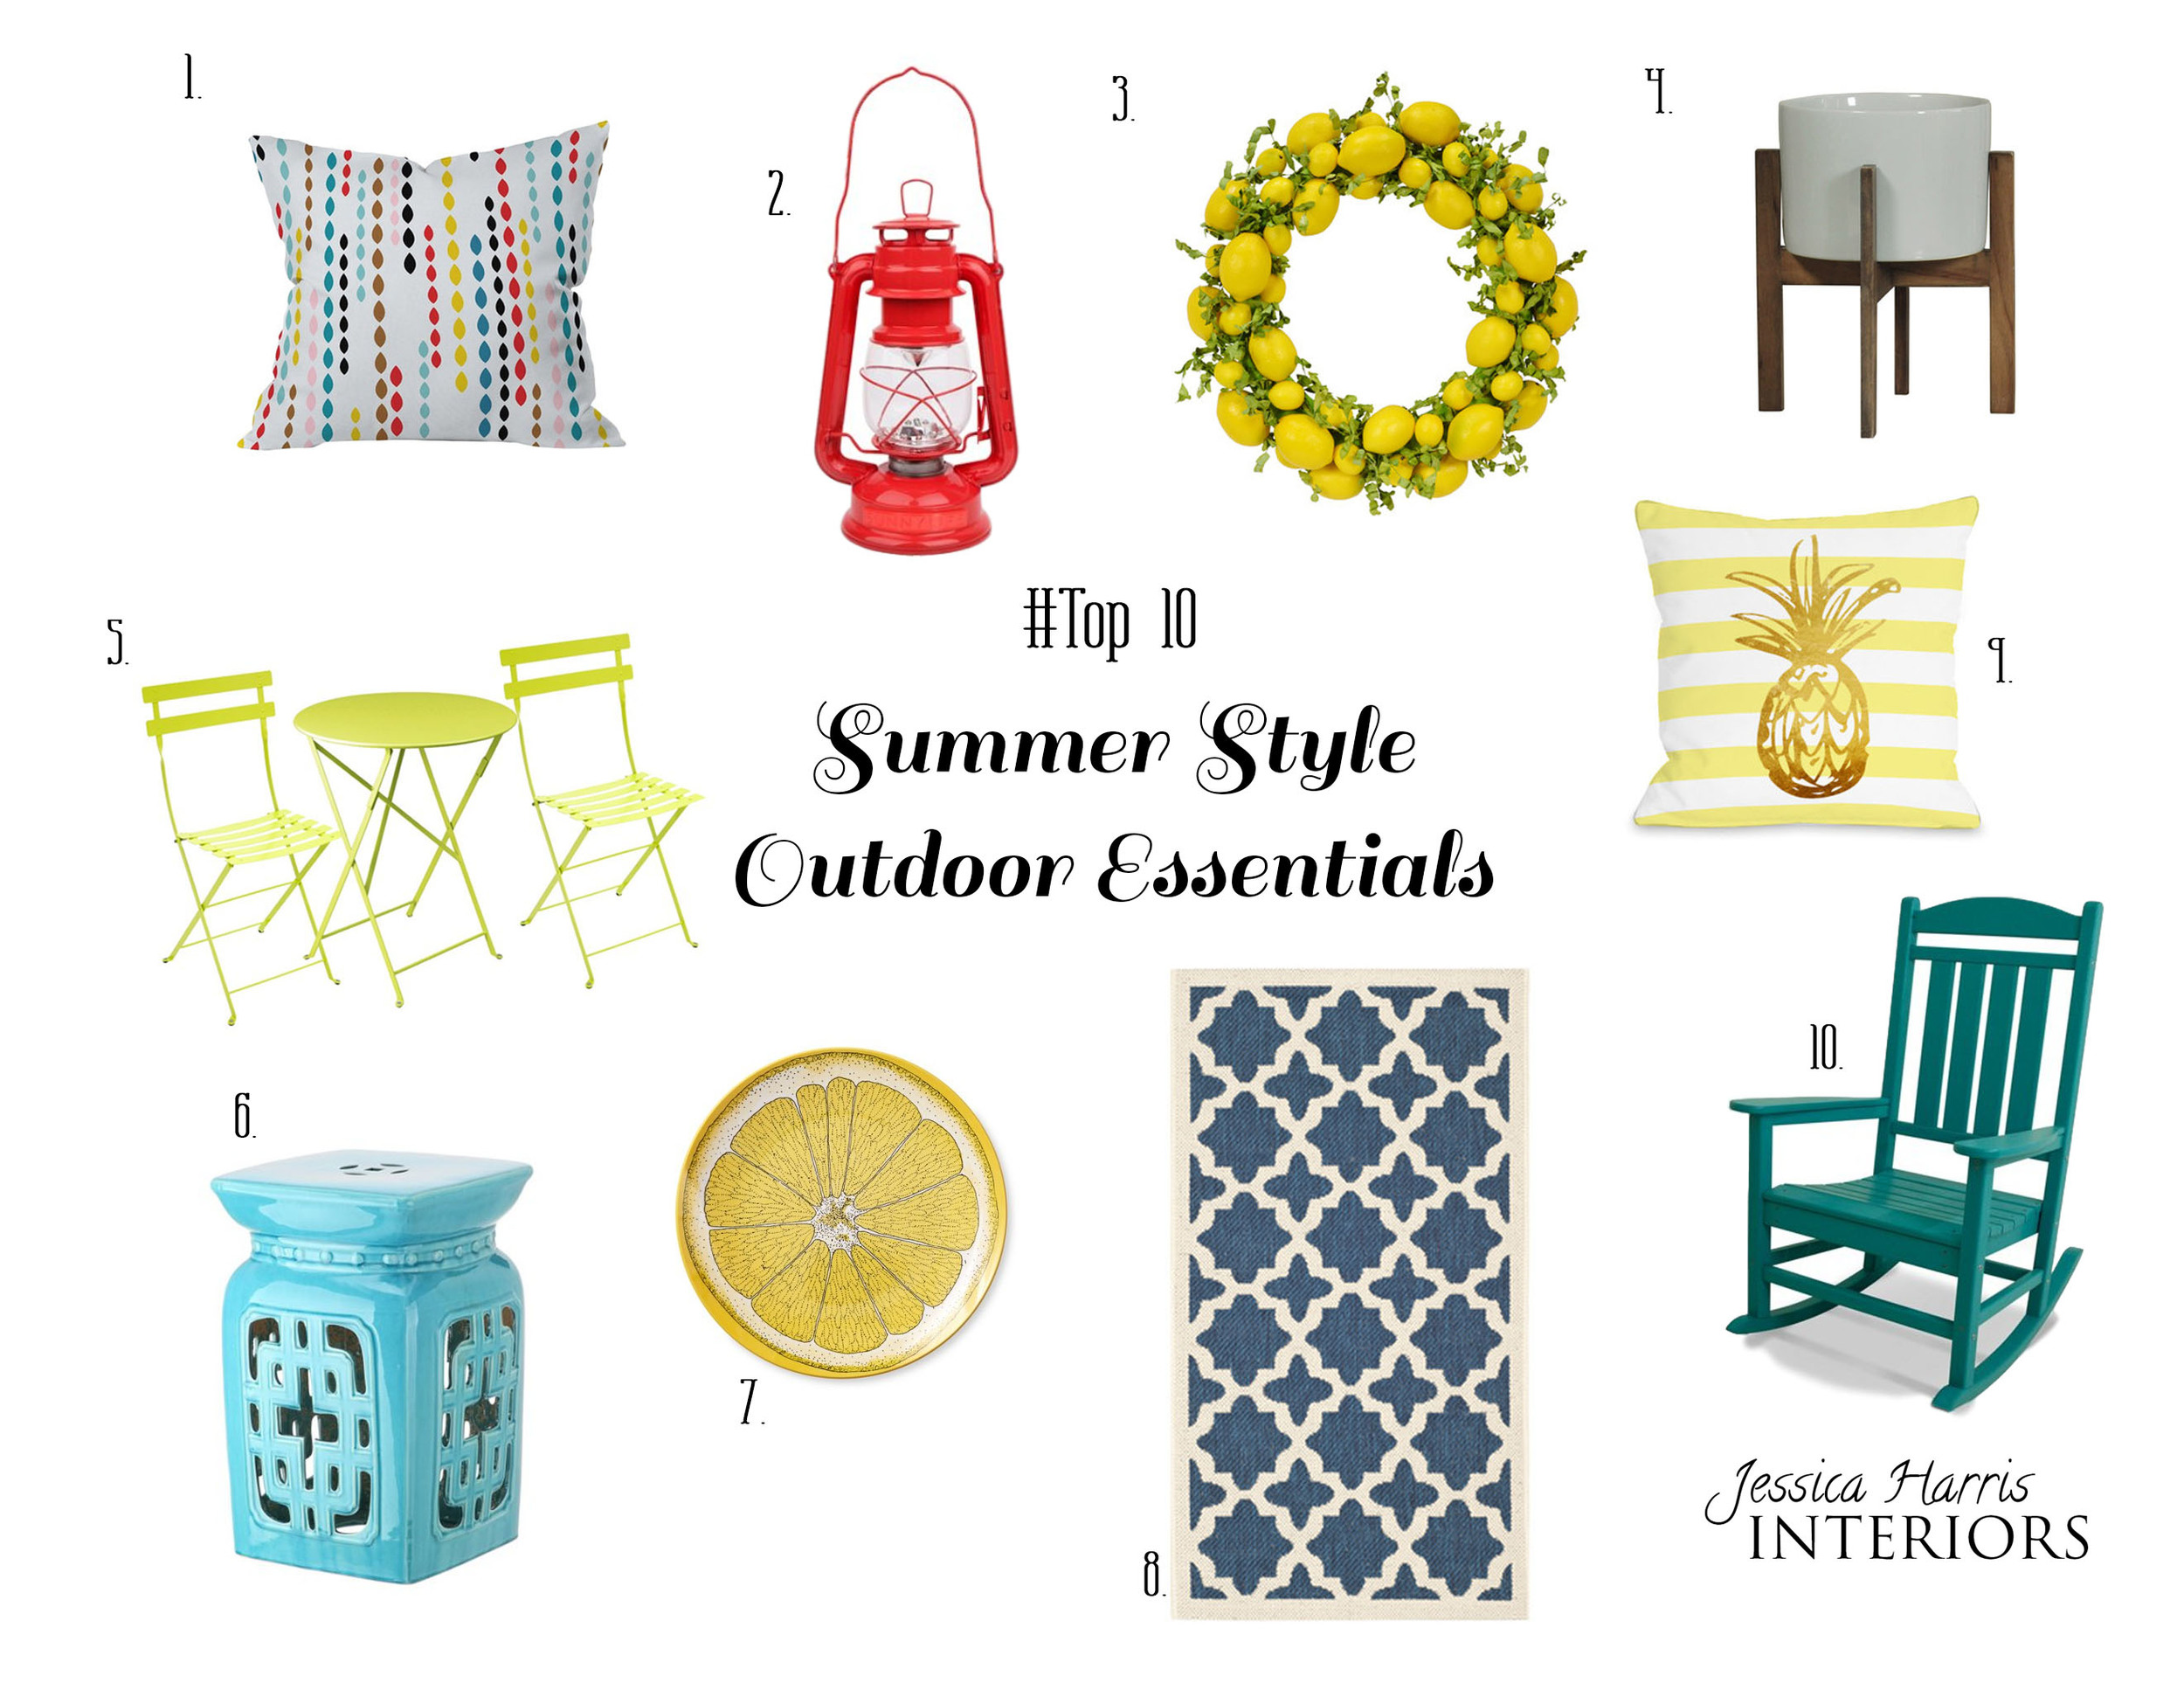 Top 10 Summer Style Outdoor Essentials